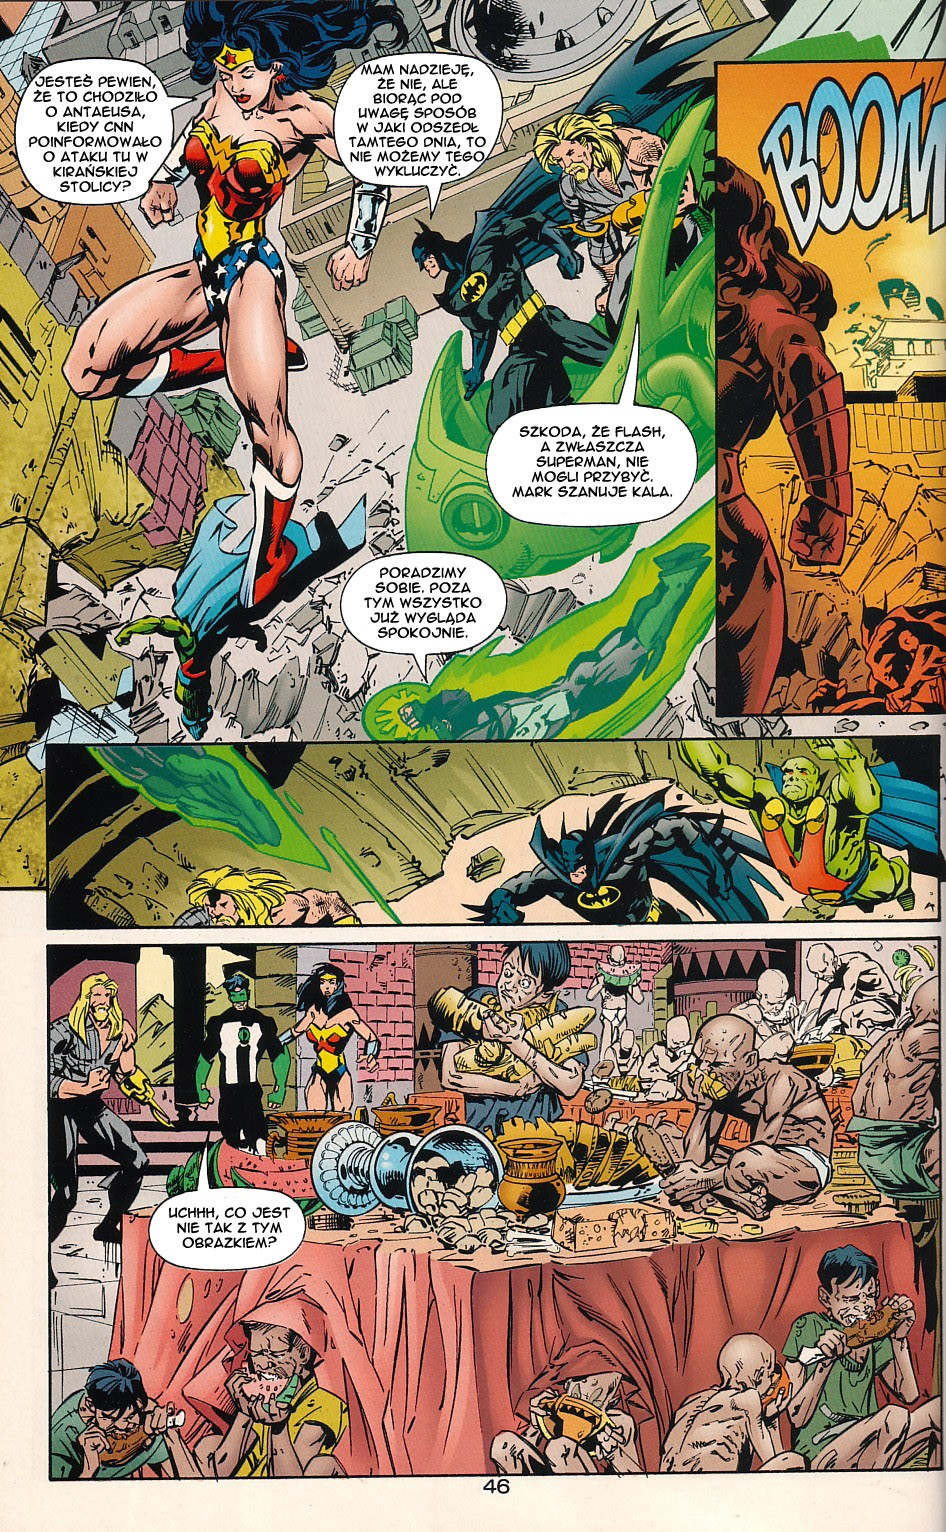 Read online JLA Superpower comic -  Issue # Full - 46